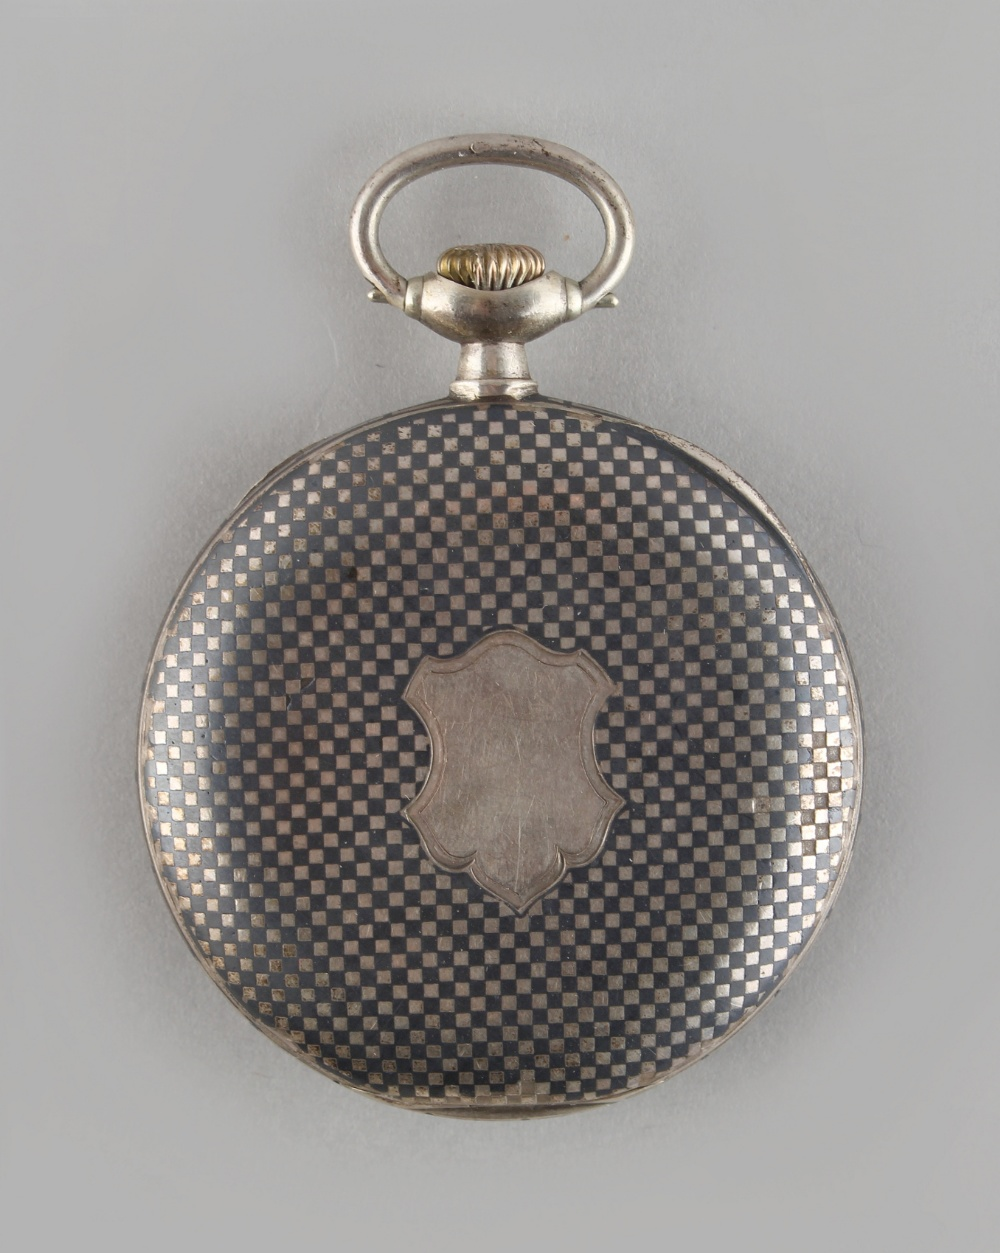 Lot 15 - Property of a deceased estate - an Omega silver & niello cased keyless wind pocket watch, with